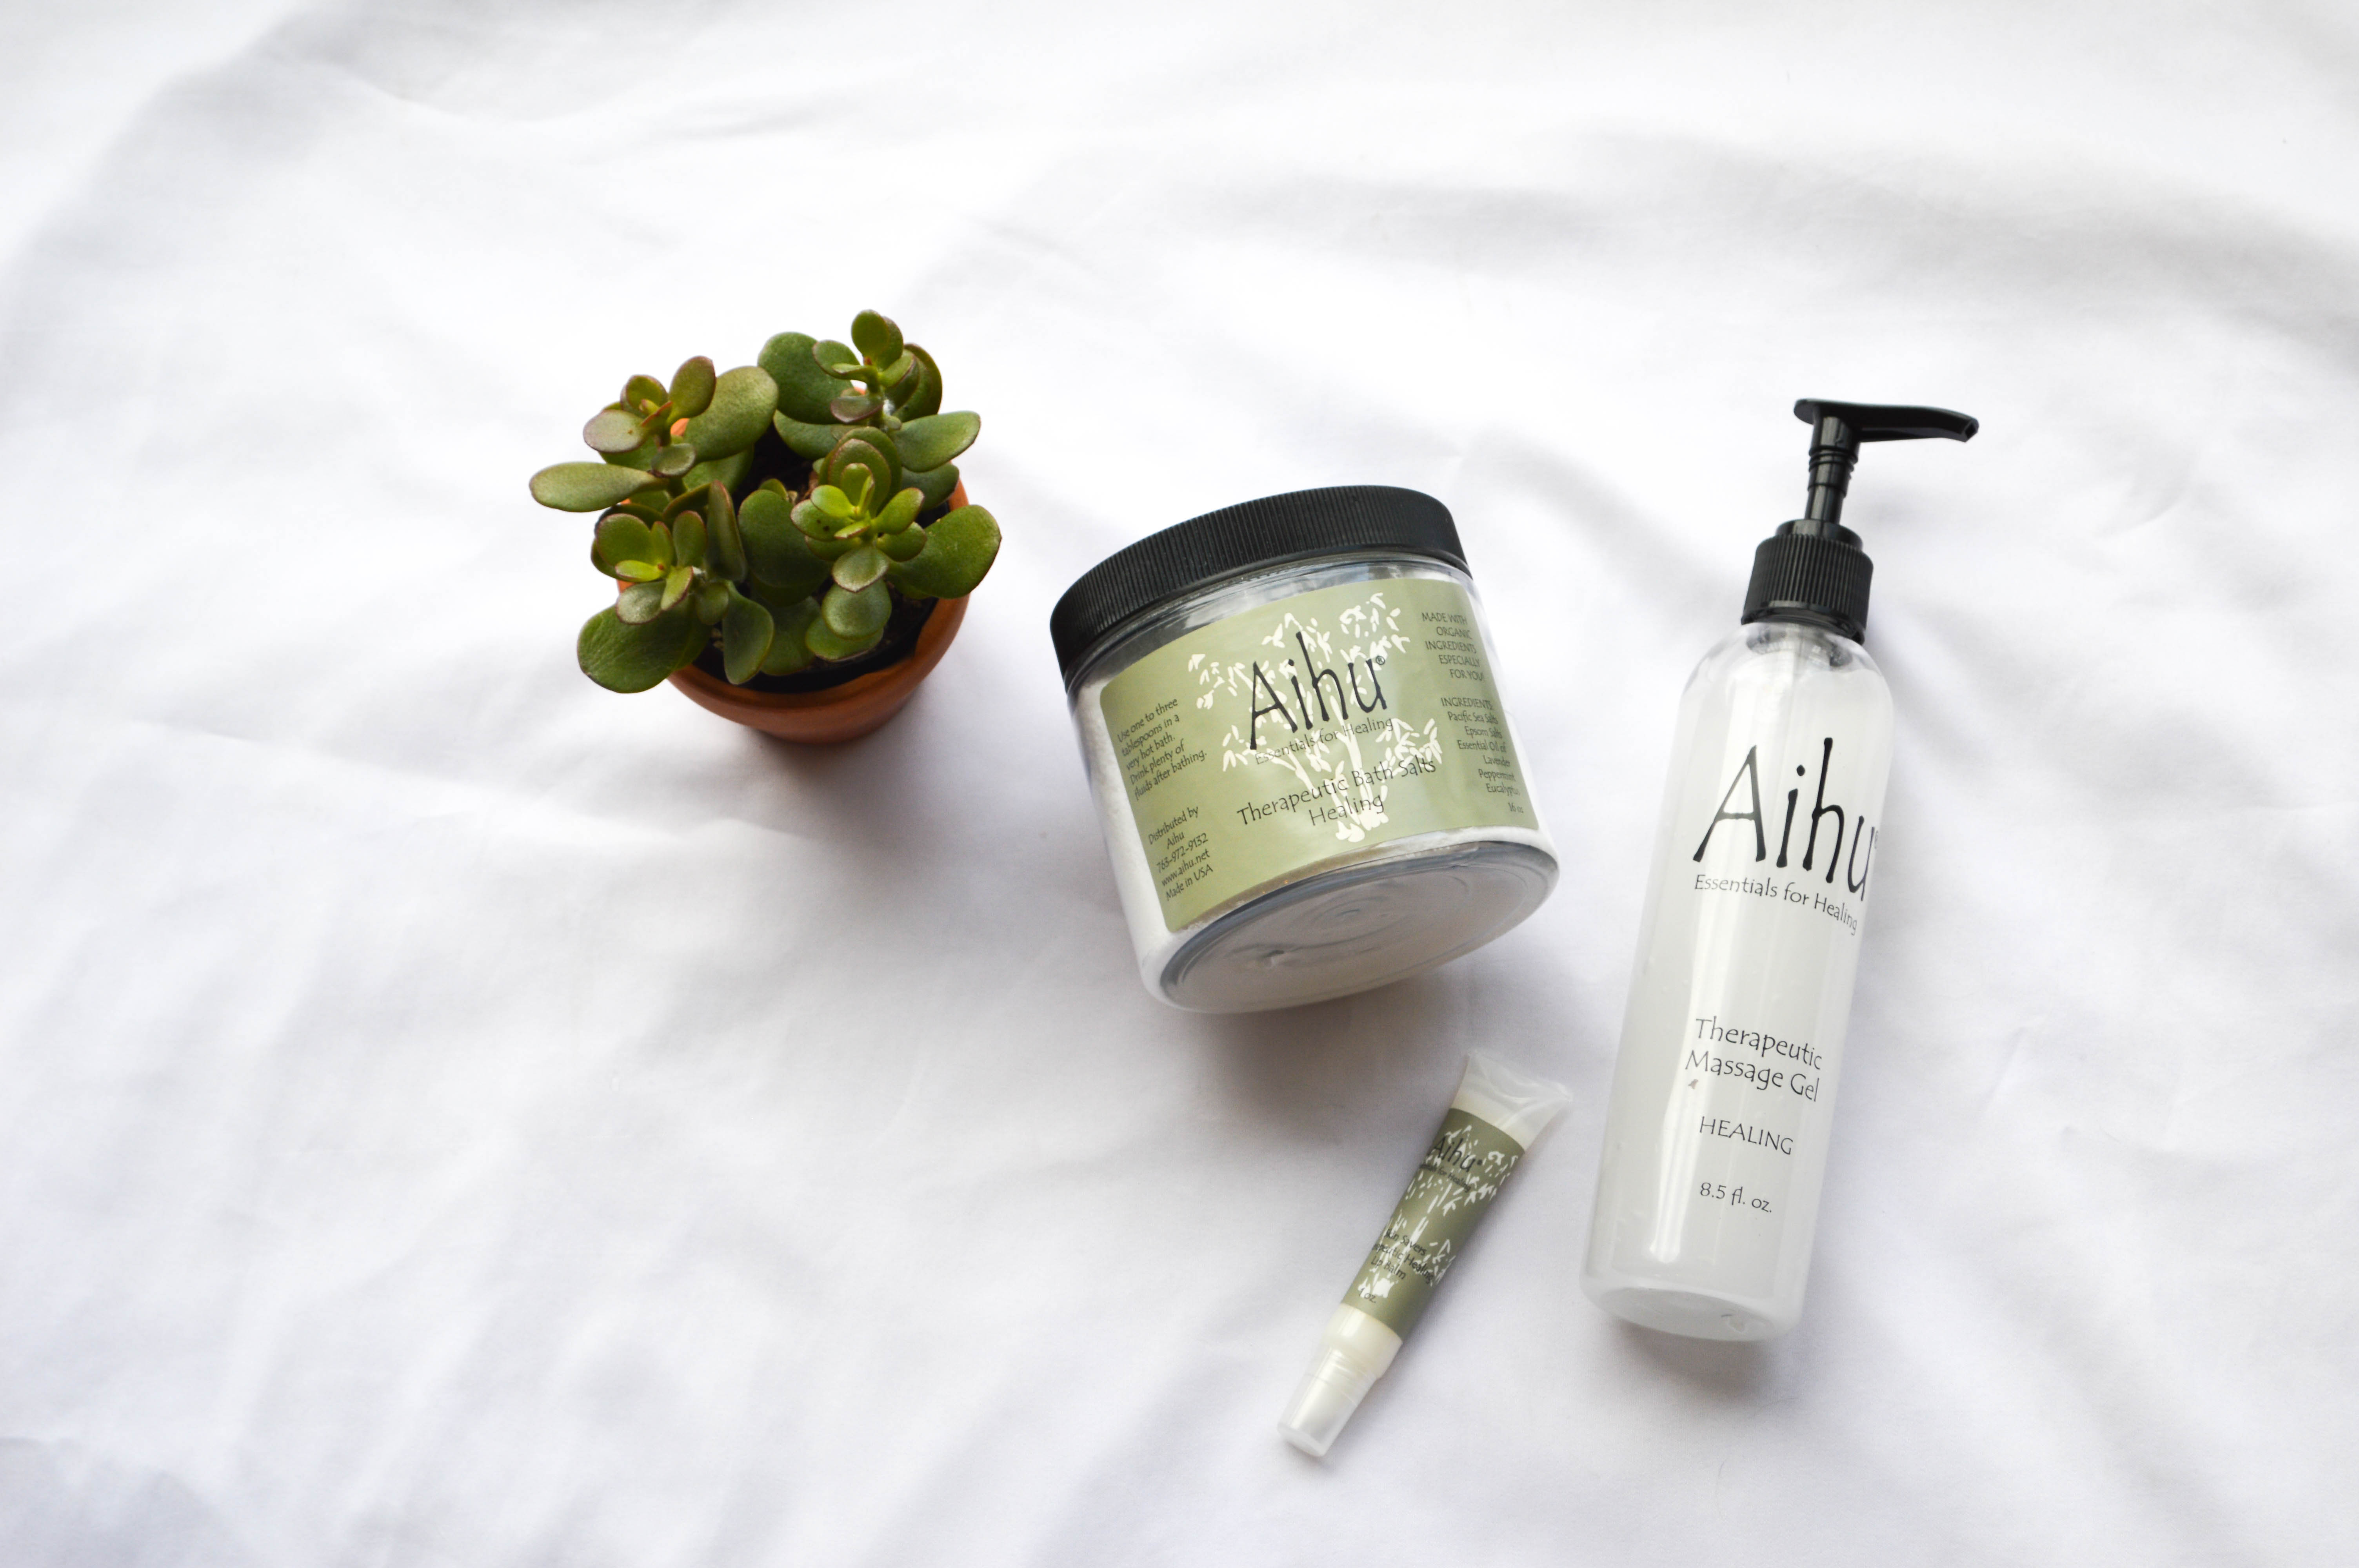 Aihu Essentials for Healing review featured by popular Denver life and style blogger, All Things Lovely